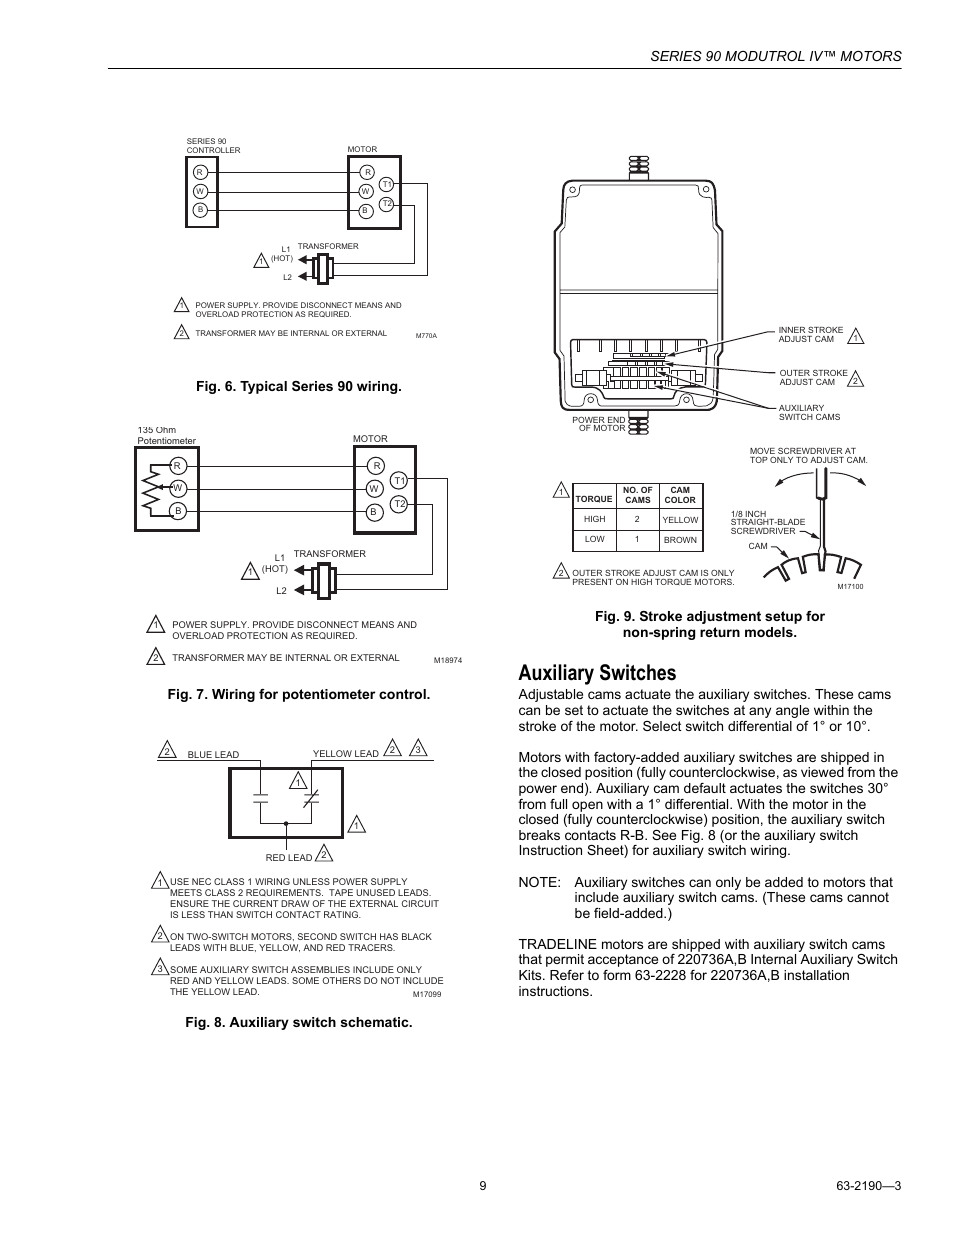 Auxiliary switches, Series 90 modutrol iv™ motors | Honeywell Modutrol IV  Motors Series 90 User Manual | Page 9 / 12